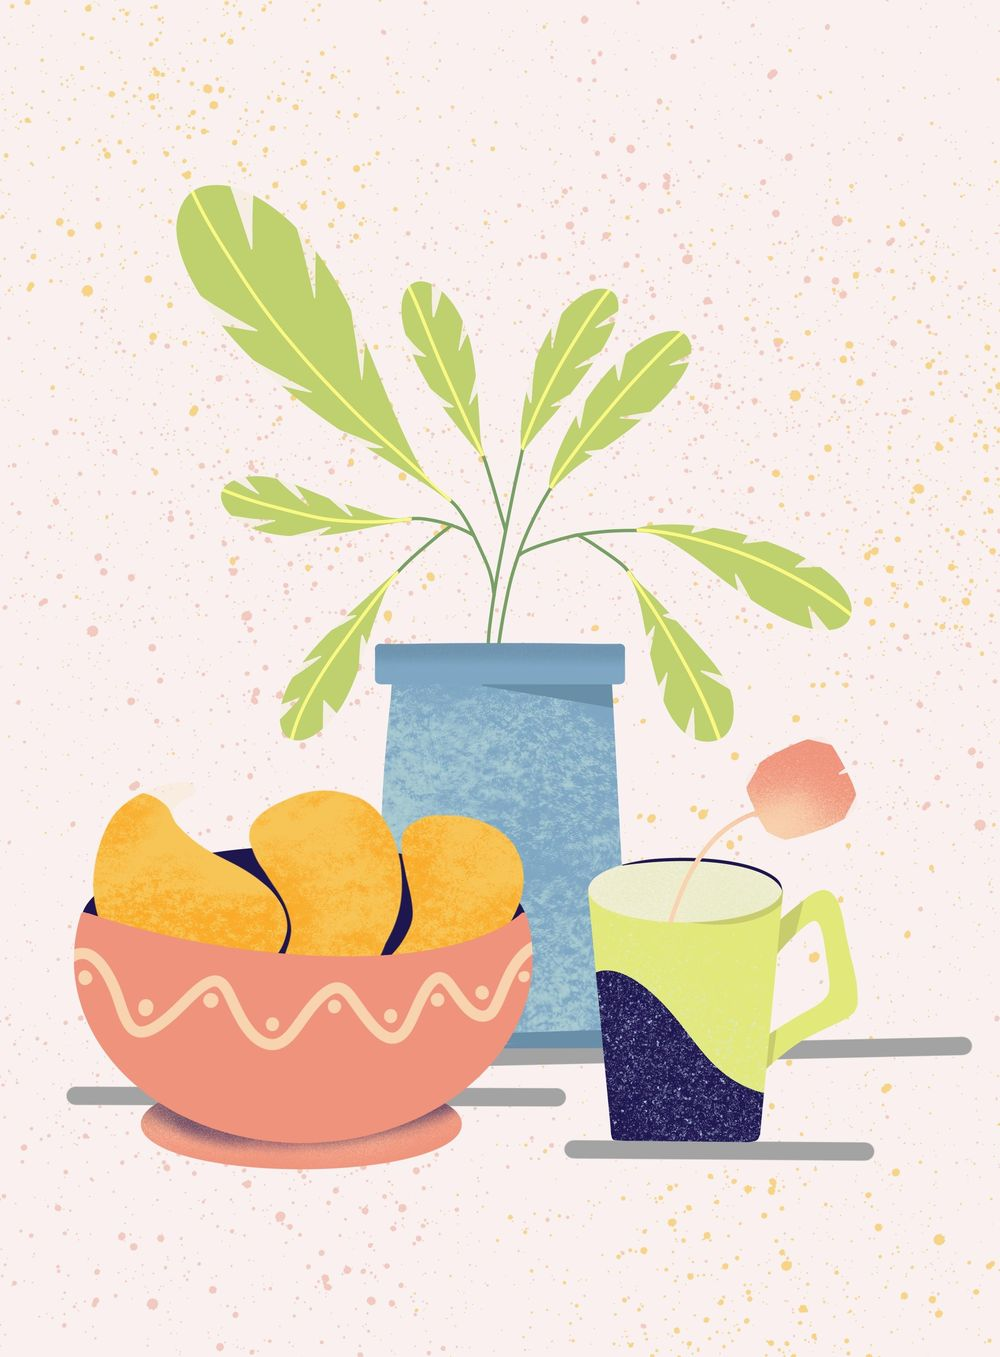 fruit bowl with mangoes, abstract plant and a mug with a tea bag! - image 1 - student project